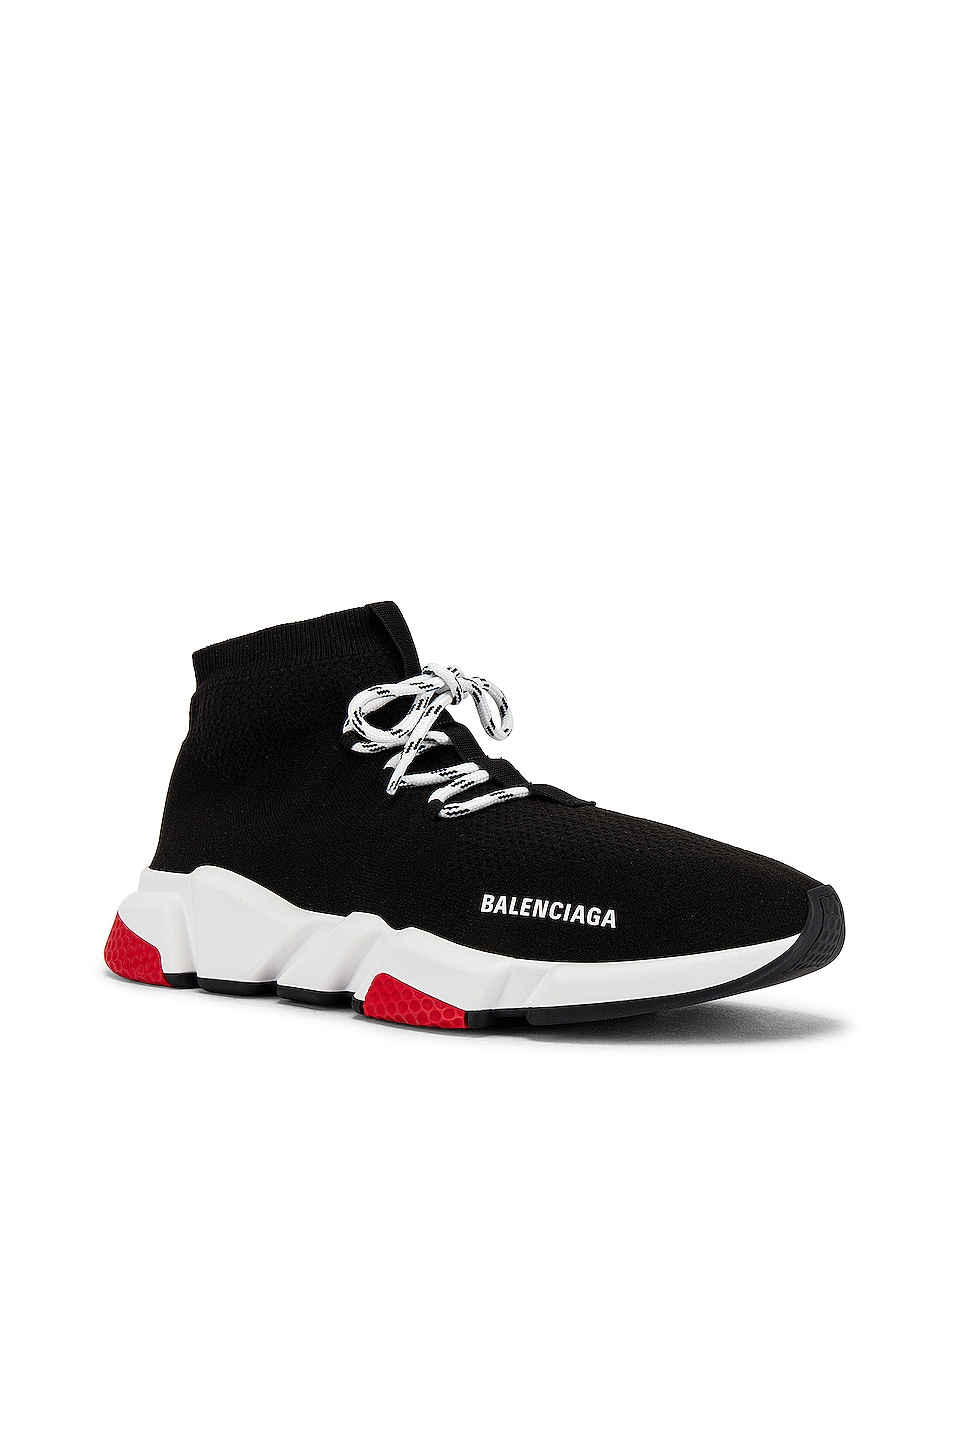 Image 1 of Balenciaga Speed Light Sneaker Lace Up in Black & White & Red & Black